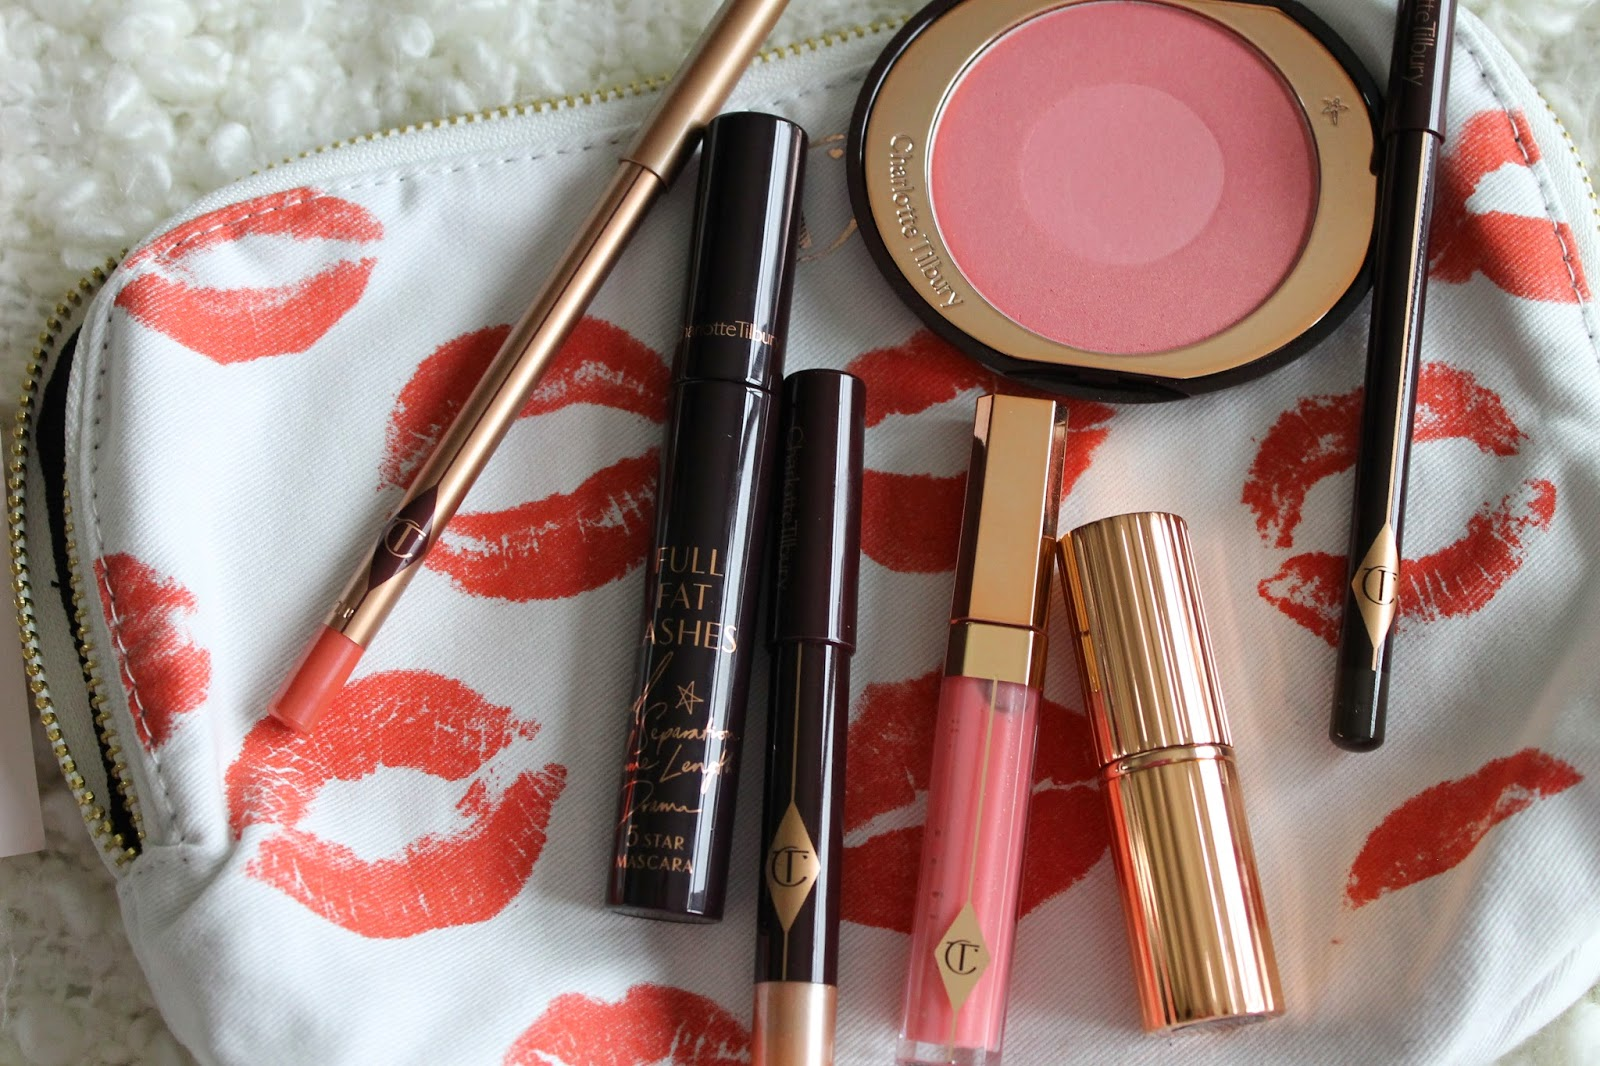 Charlotte Tilbury The Ingénue Look Box